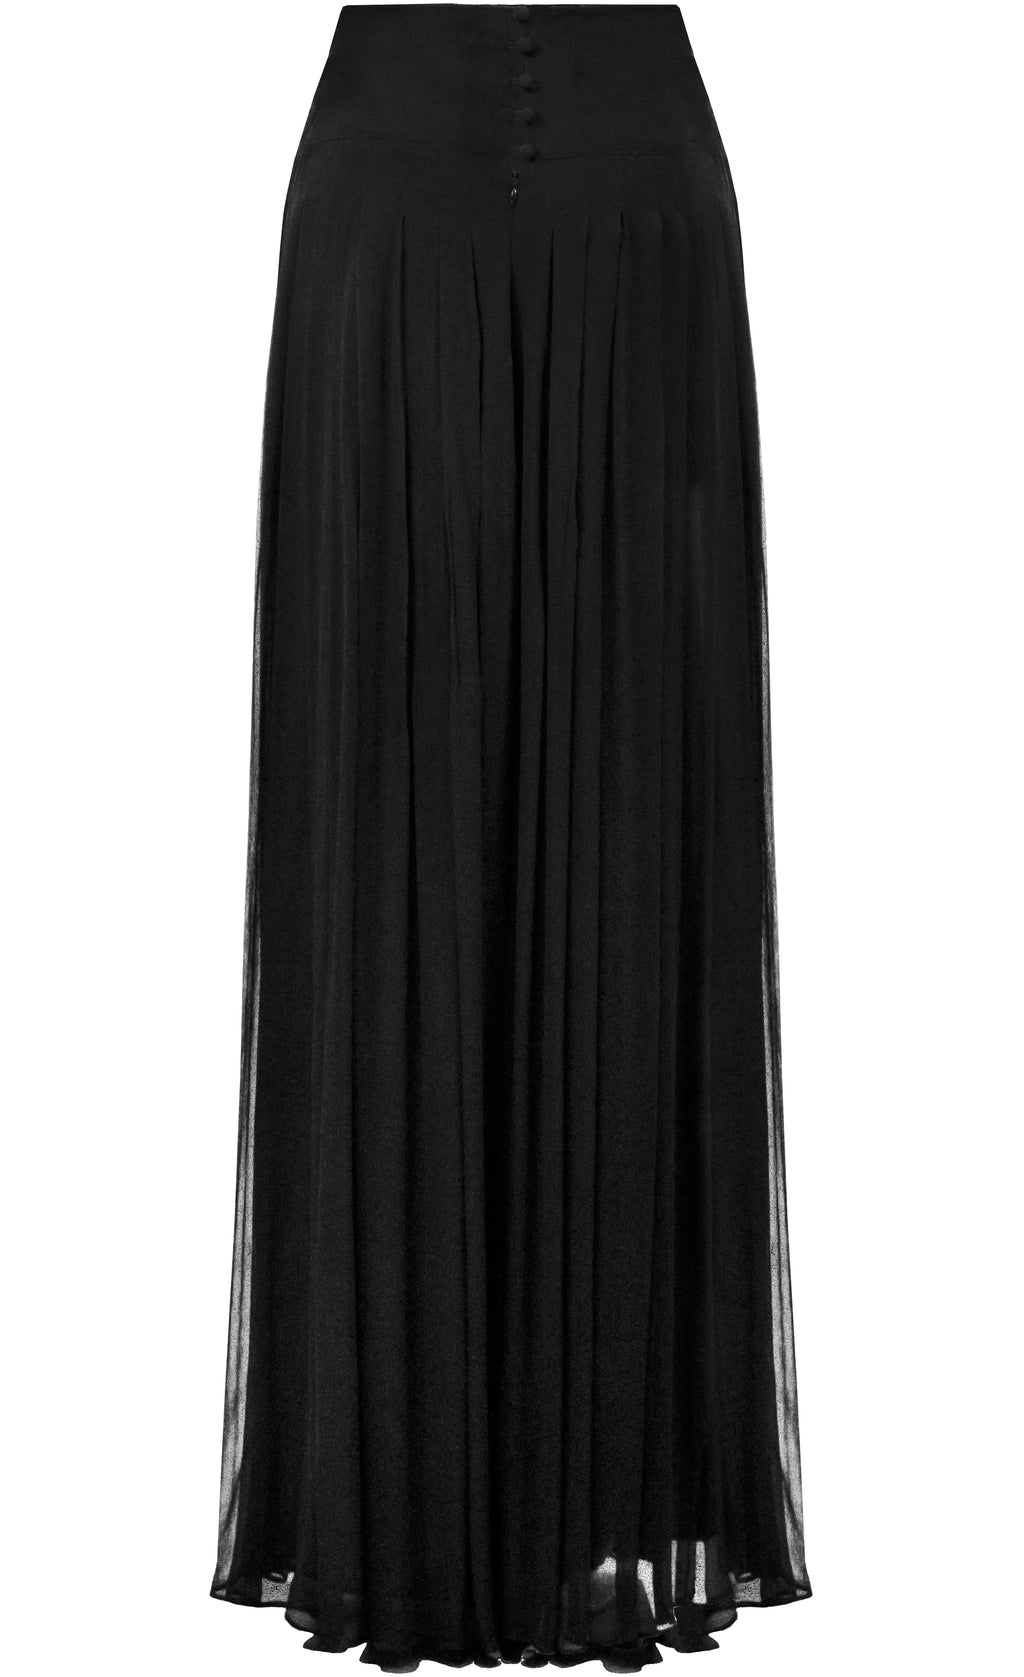 Willow Crinkle Pleated Pant - KxLNewYork